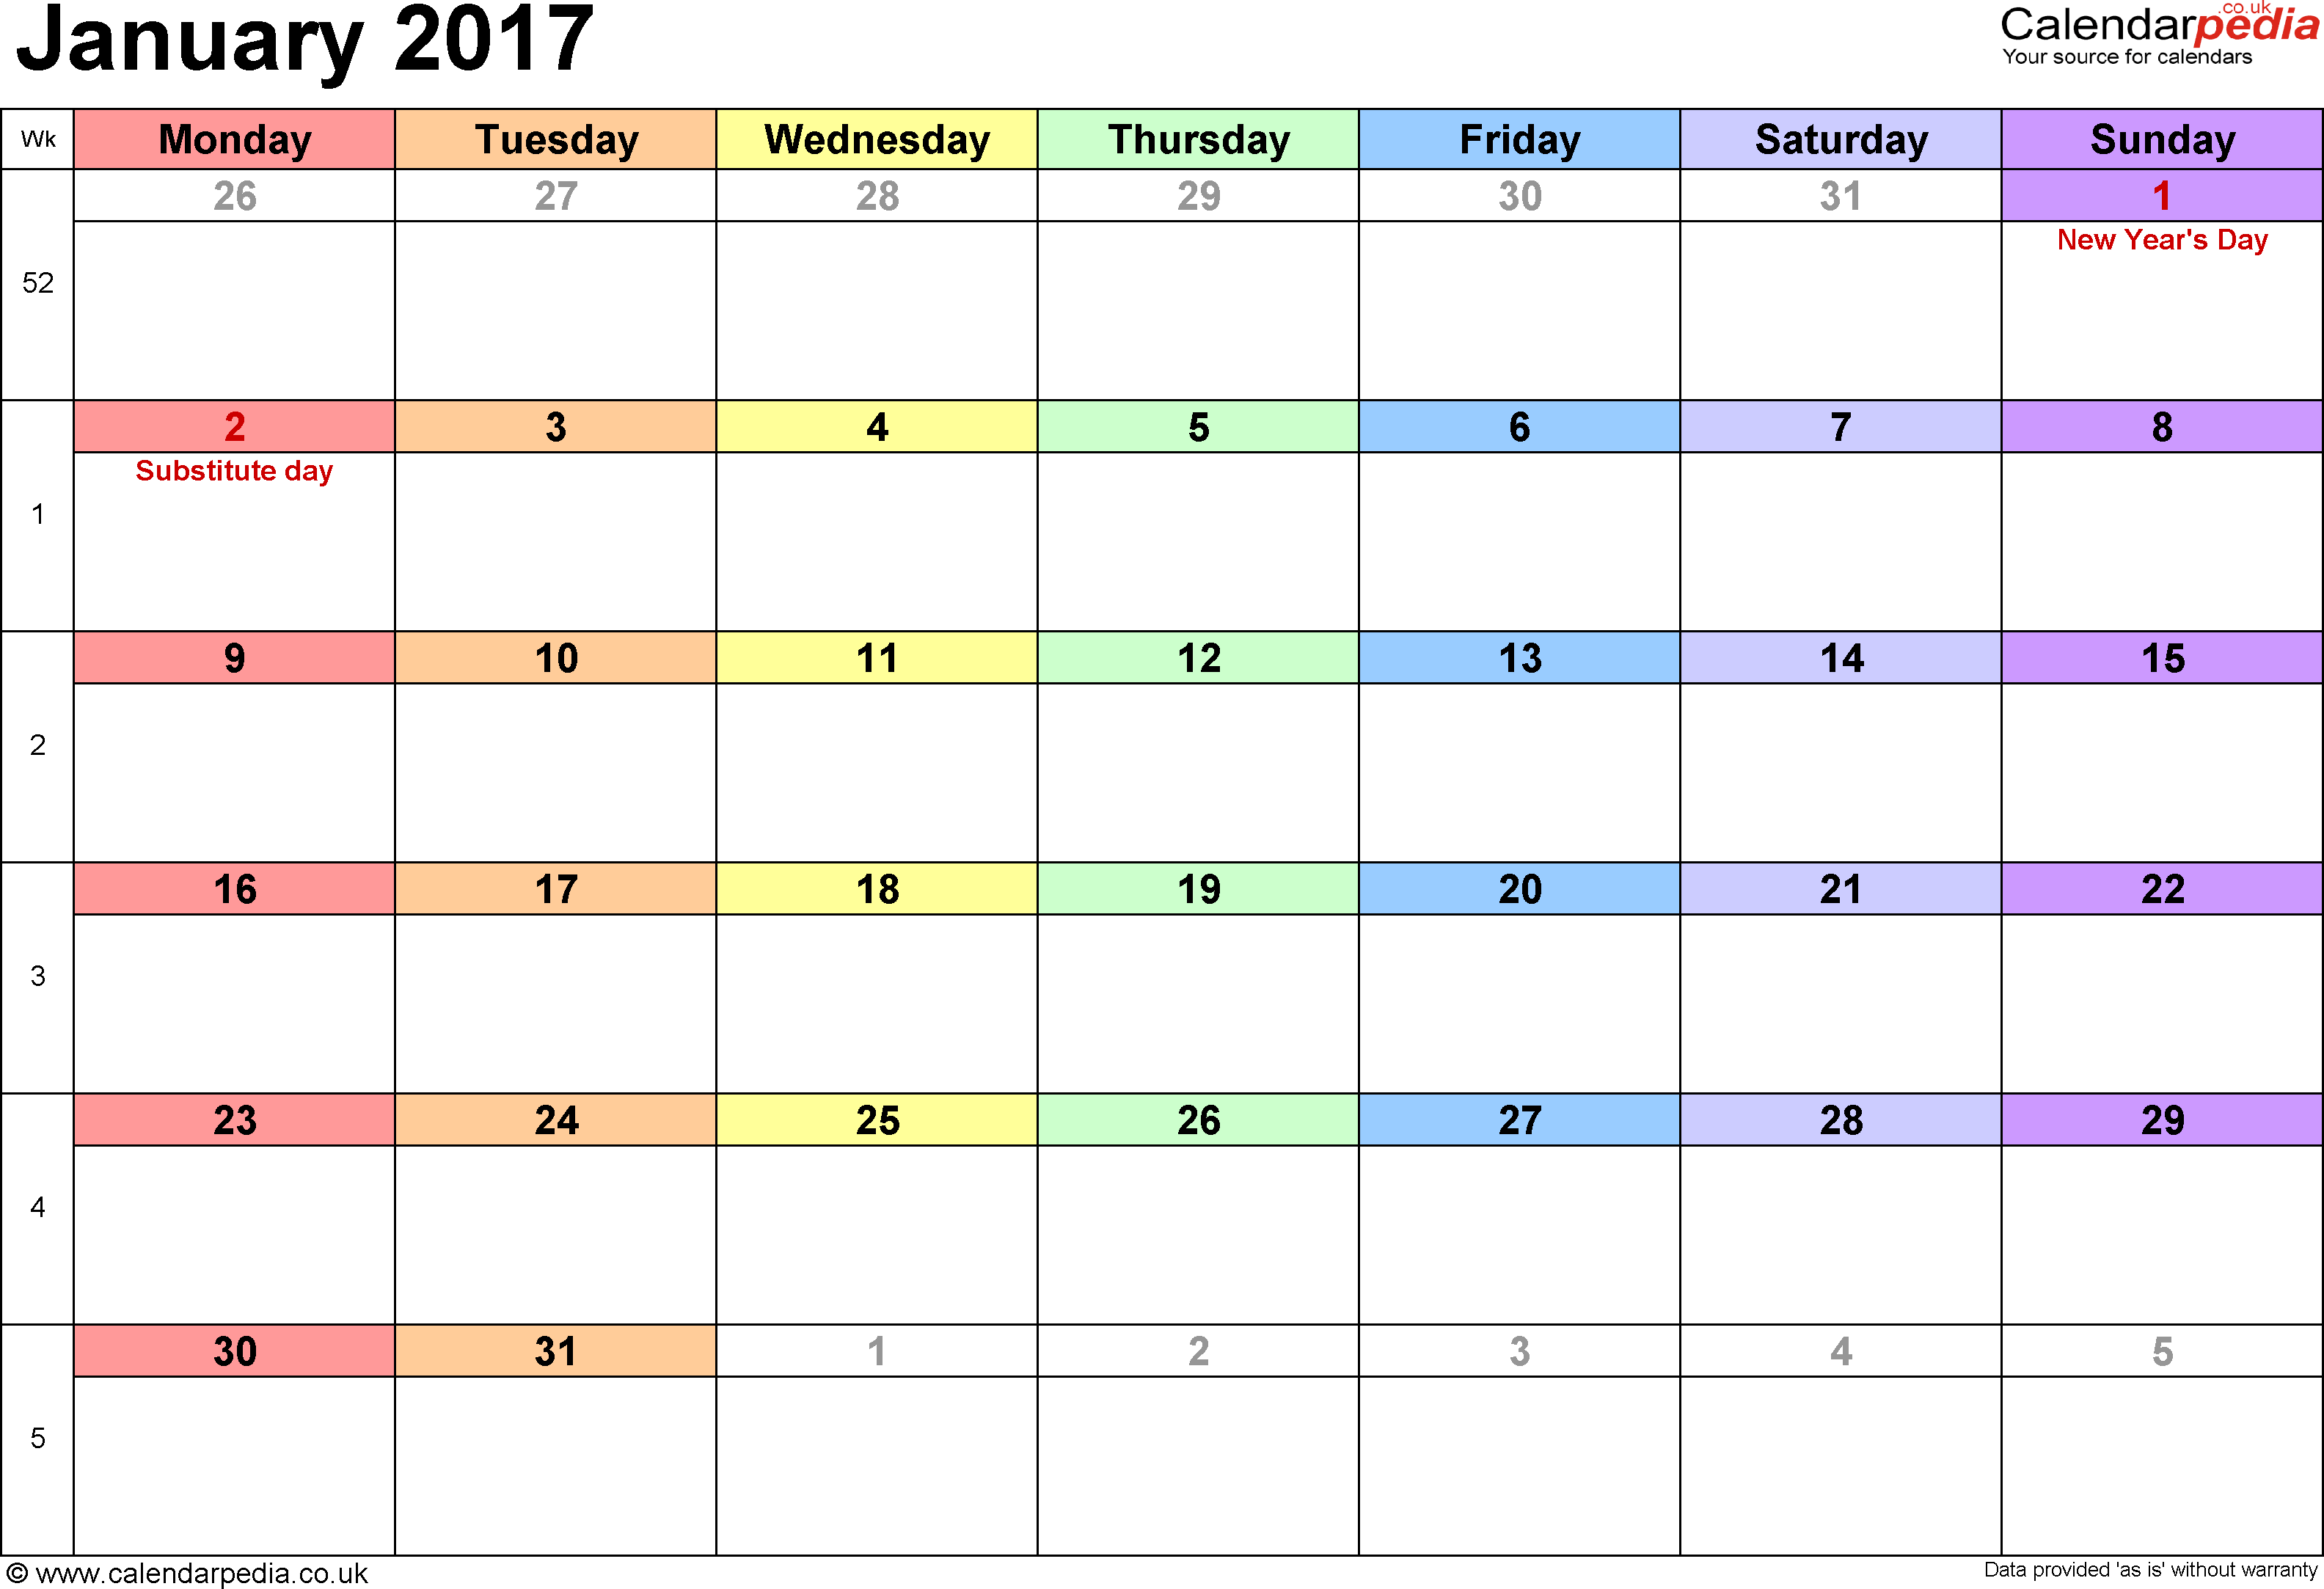 Calendar January 2017, landscape orientation, 1 page, with UK bank holidays and week numbers